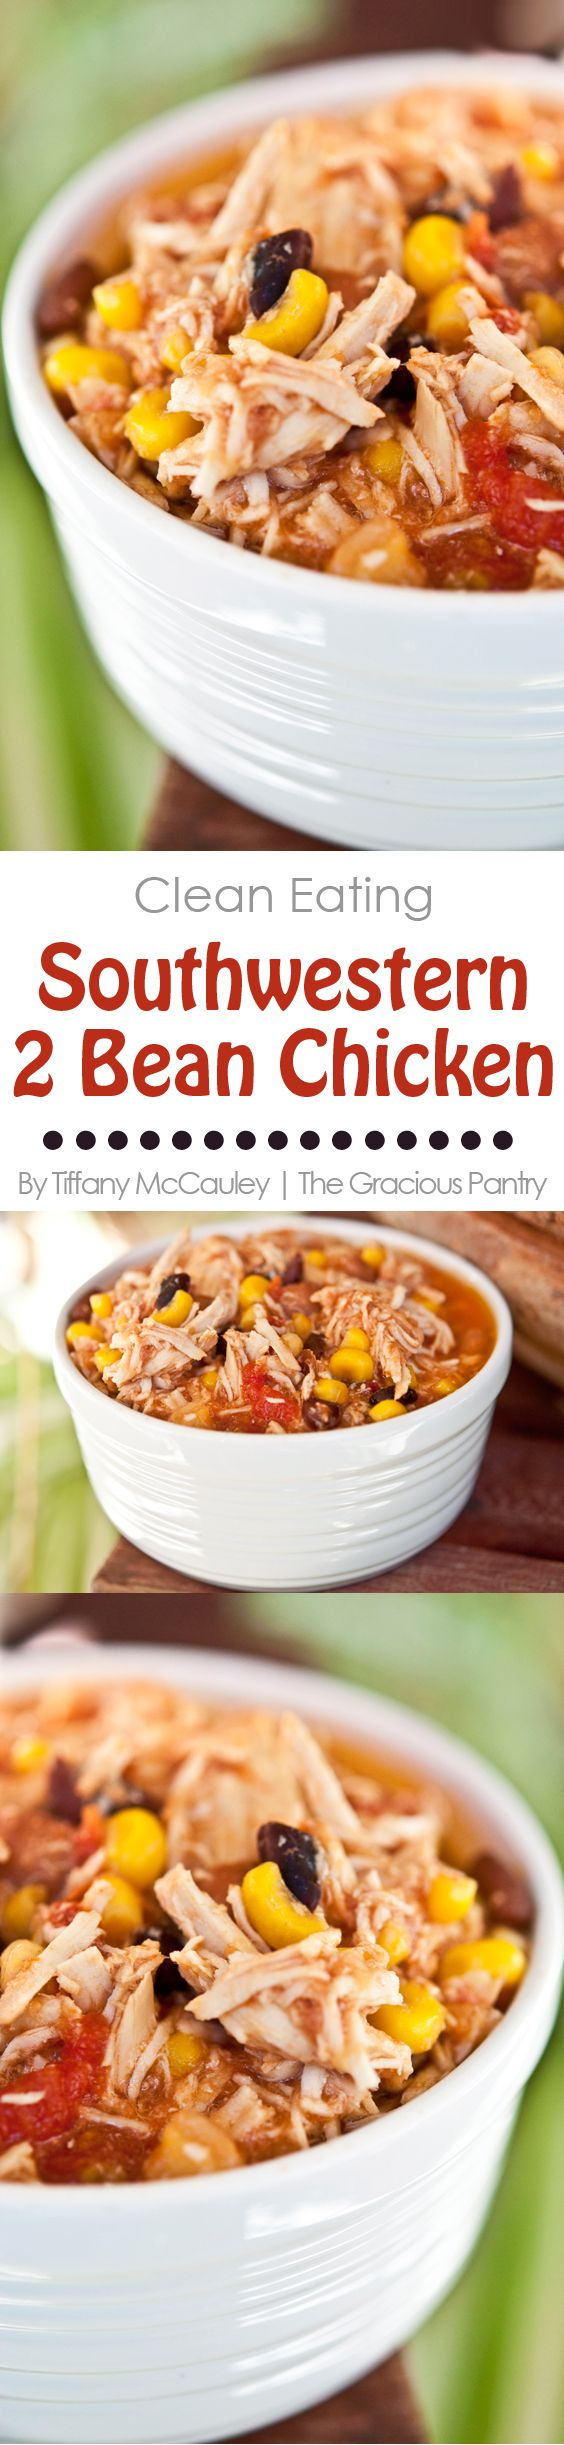 Clean Eating Recipes | Southwestern Chicken | Dinner Recipes | Chicken Dinner